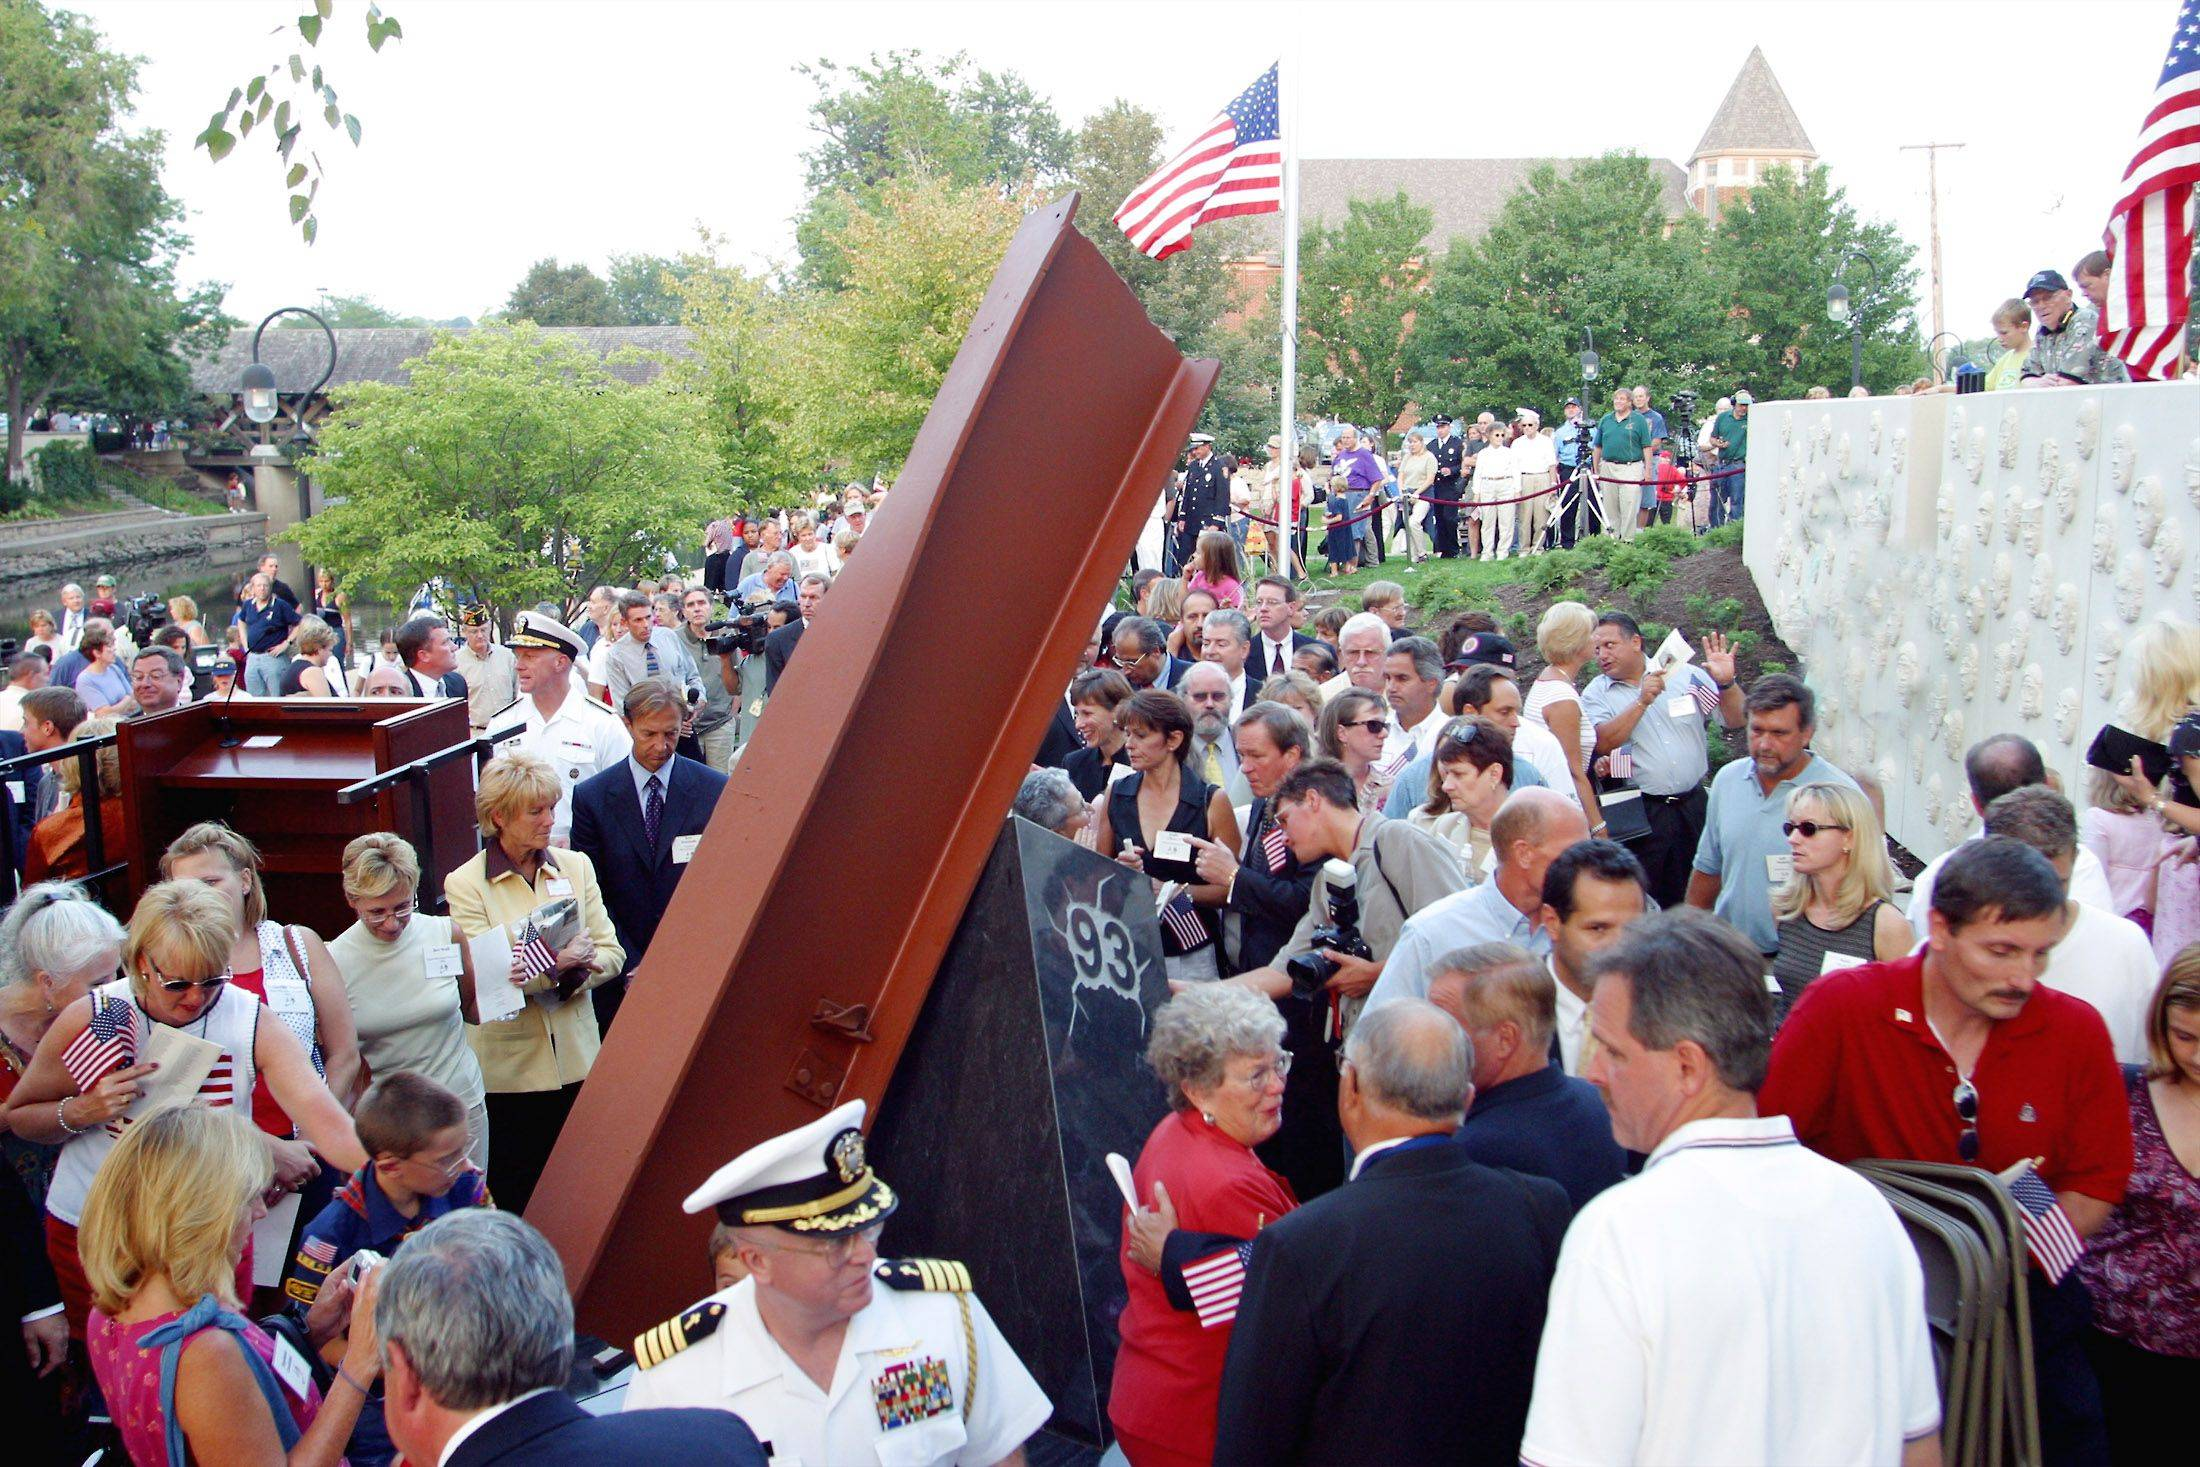 A crowd helps dedicate Naperville's Sept. 11 memorial in 2003. The memorial is dedicated to Naperville native Naval Commander Dan Shanower, who died in the attack on the Pentagon.